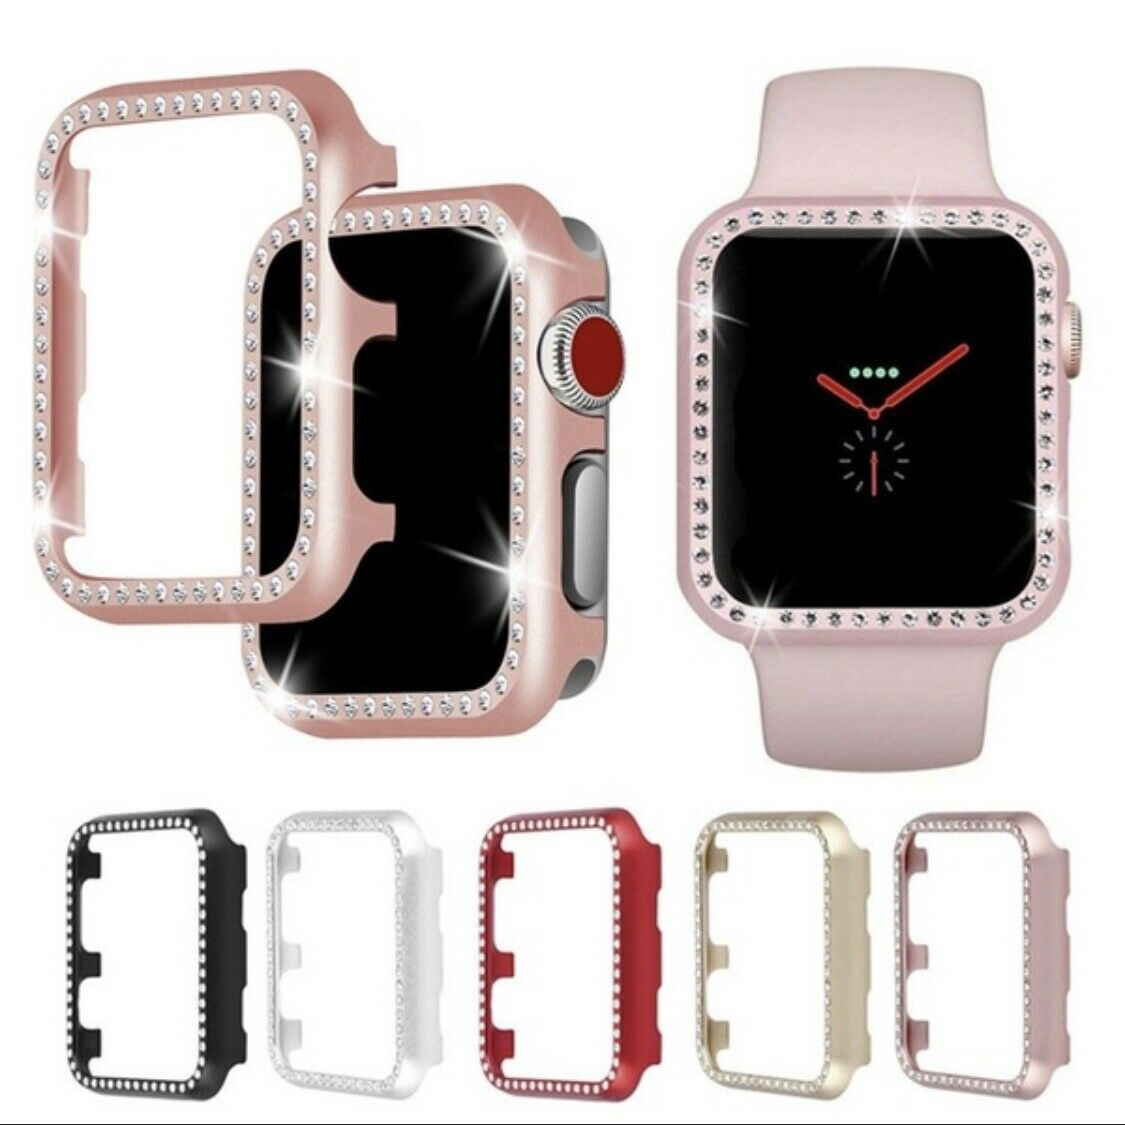 For Apple Watch Series 1/2/3/4 Diamond Bling Metal Crystal iWatch Protector Case Cases, Covers & Skins